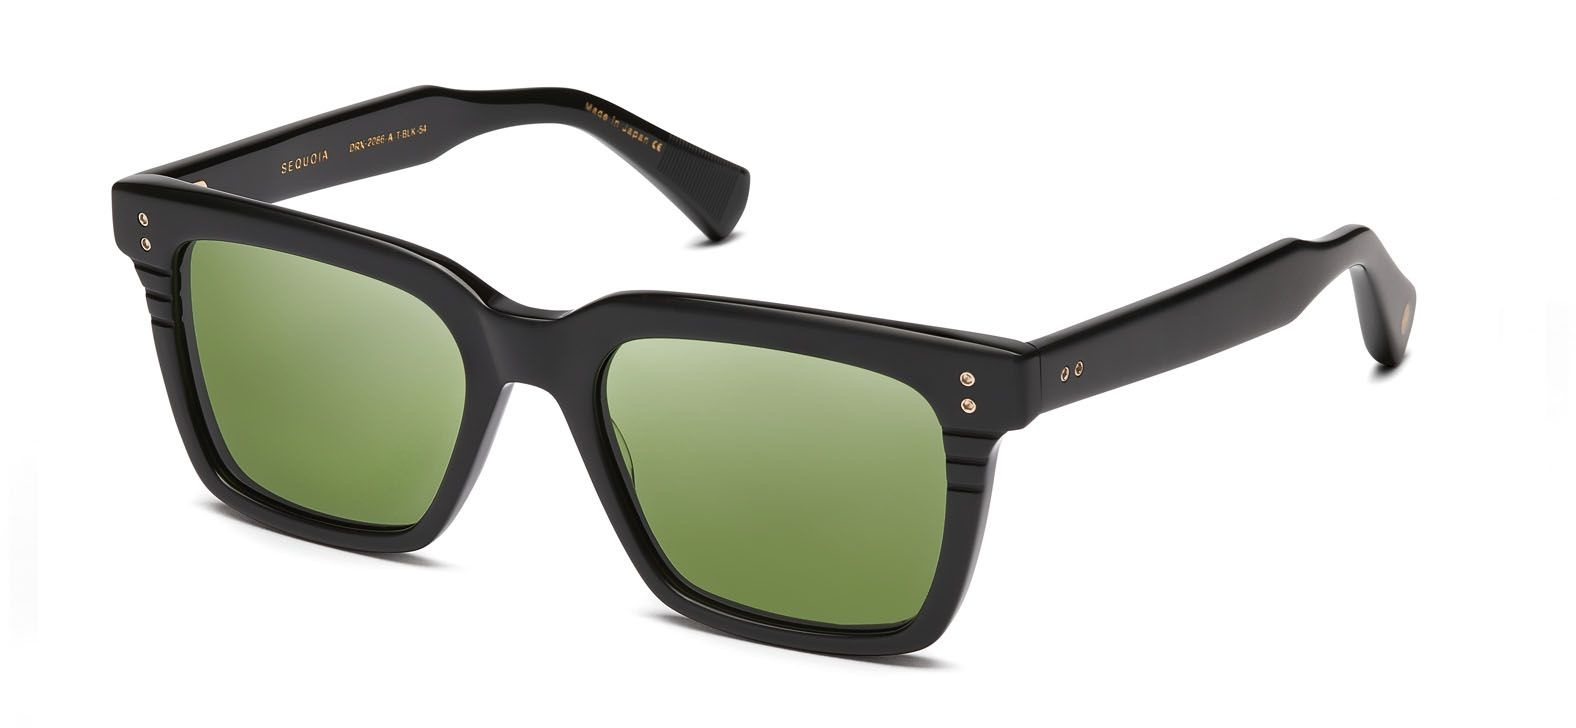 Sequoia DRX-2086-A-T-BLK-54-2